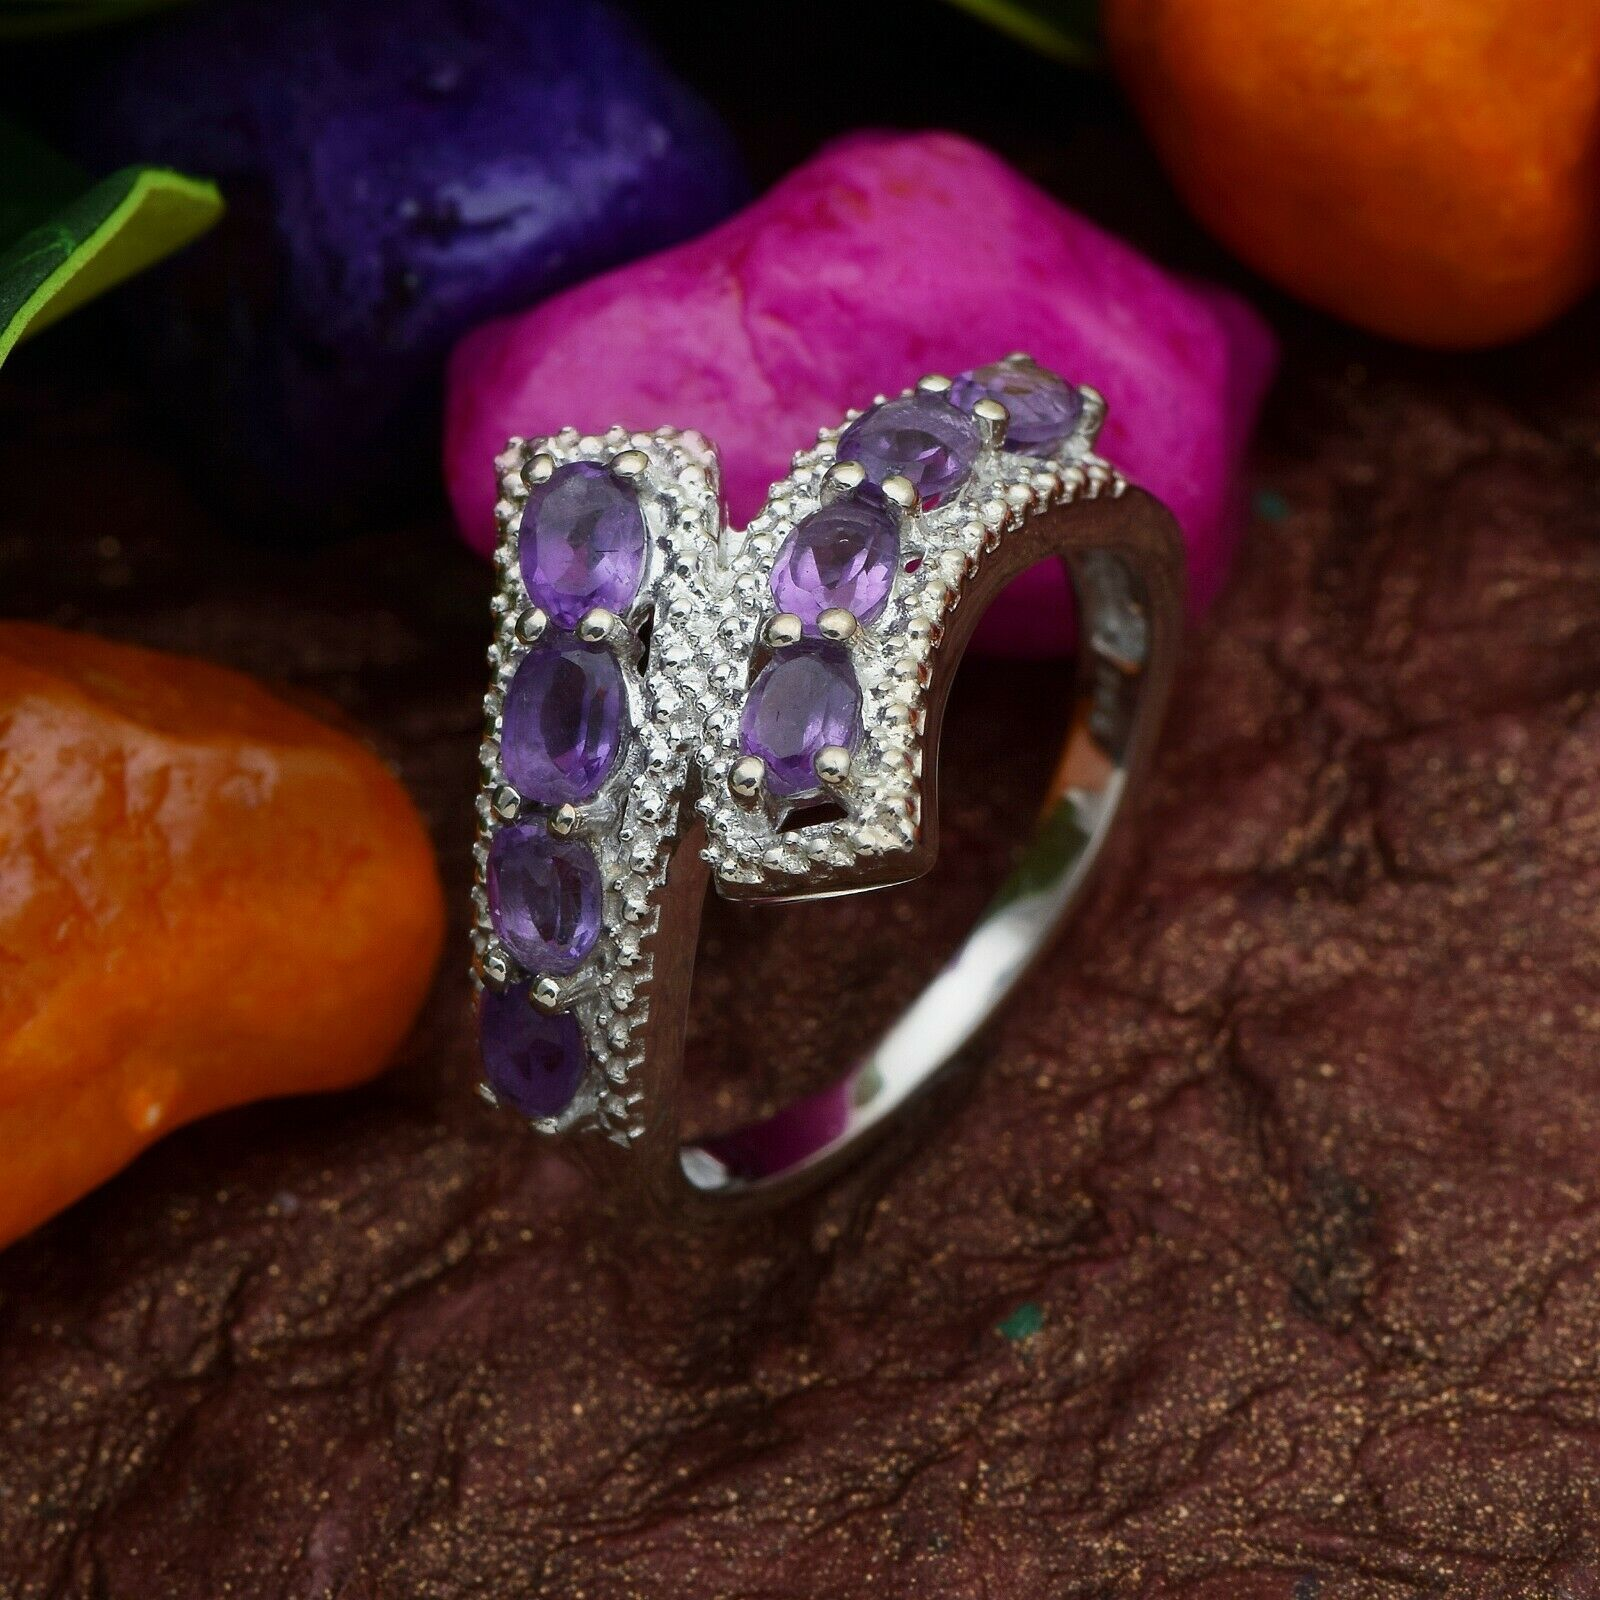 Primary image for Shine Jewel 925 Sterling Silver 5x3 MM Amethyst Bypass Over Wrap Elegant Ring